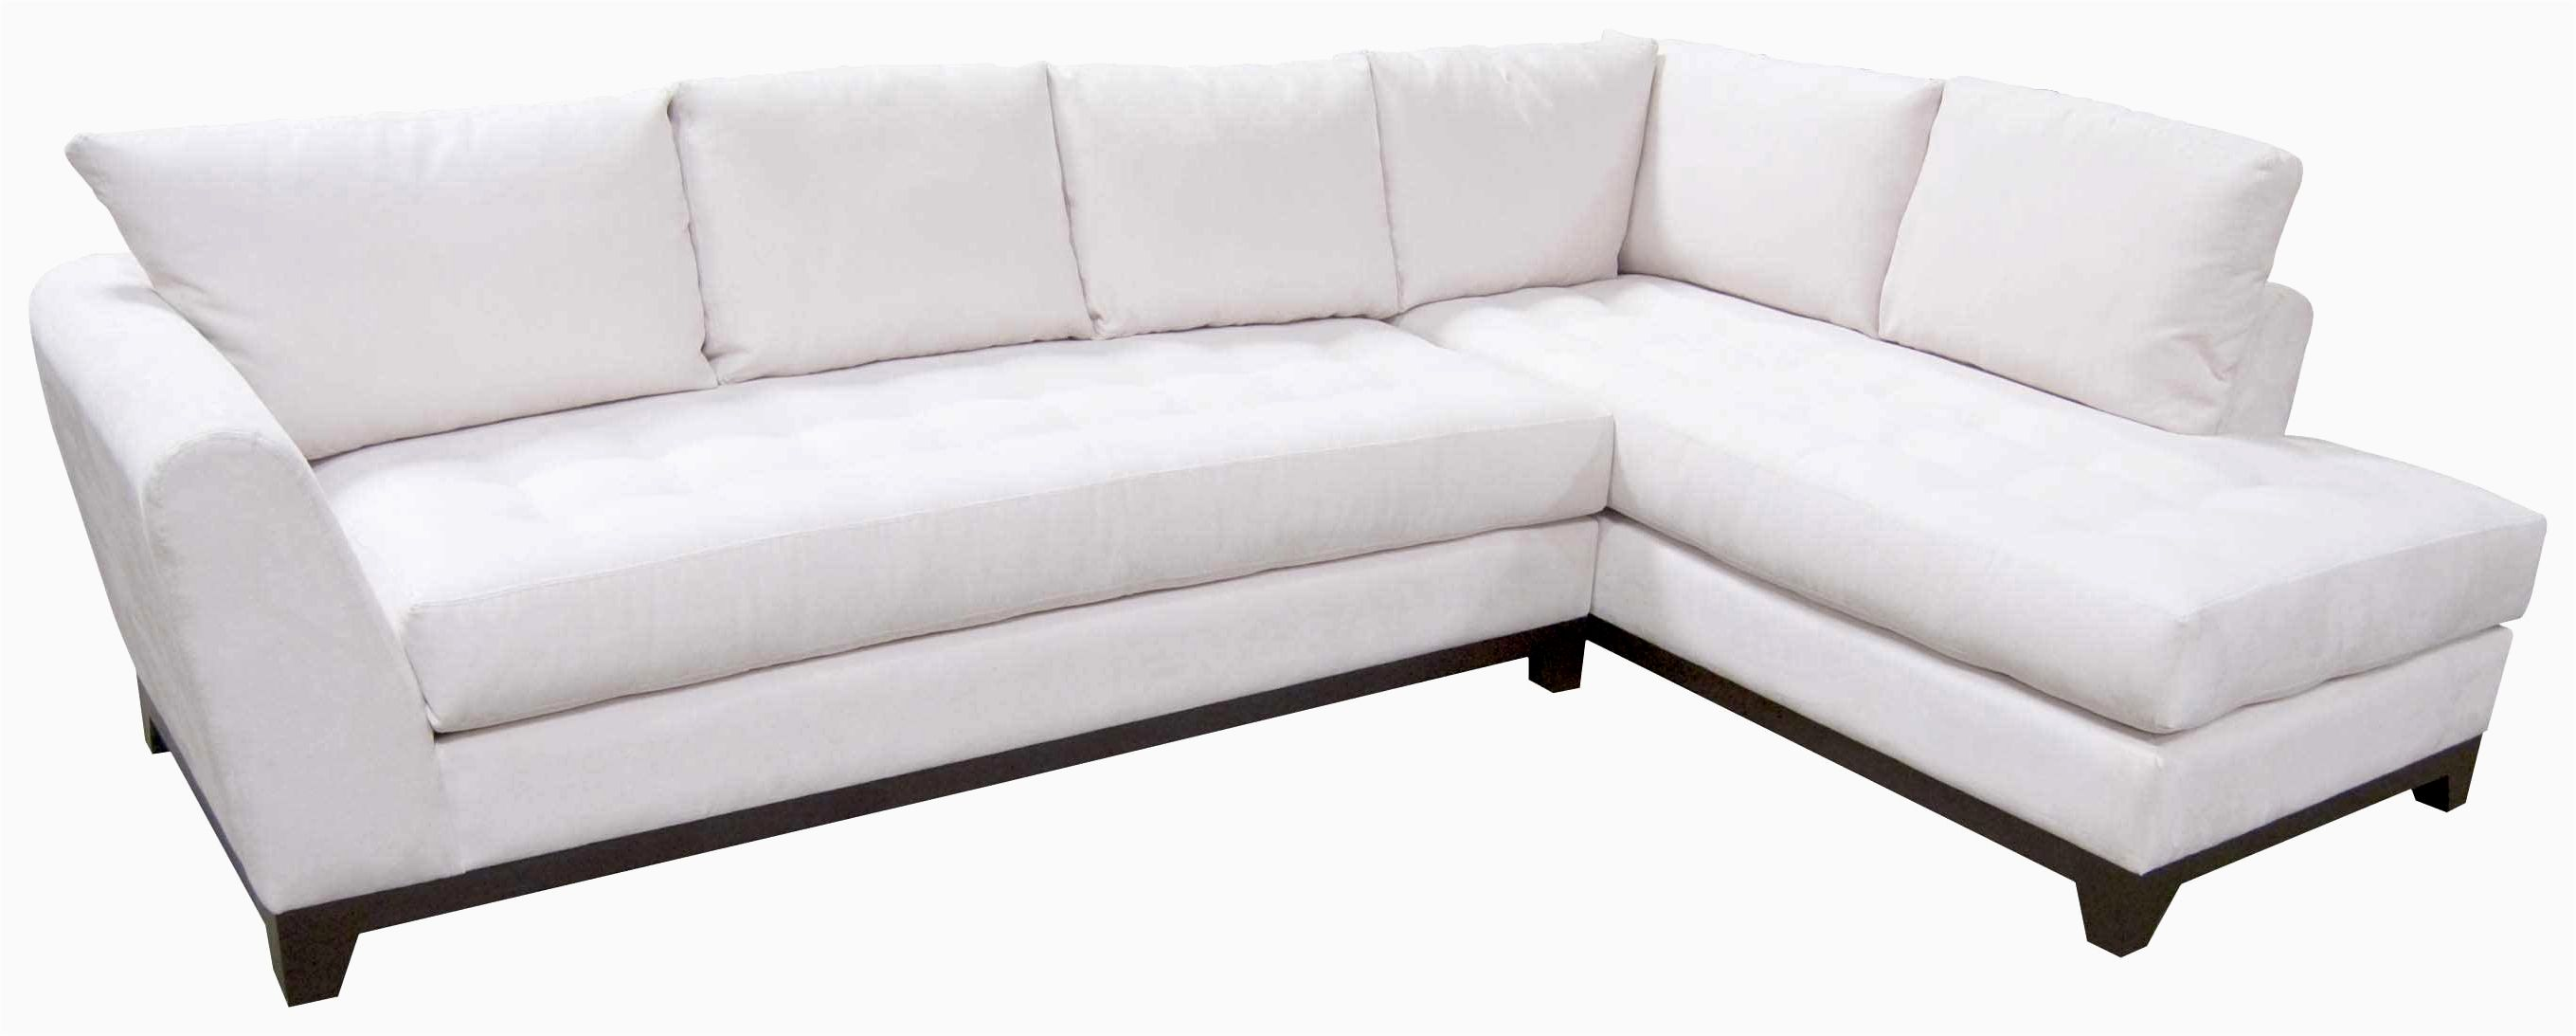 fresh u shaped sectional sofa with chaise design-Unique U Shaped Sectional sofa with Chaise Image